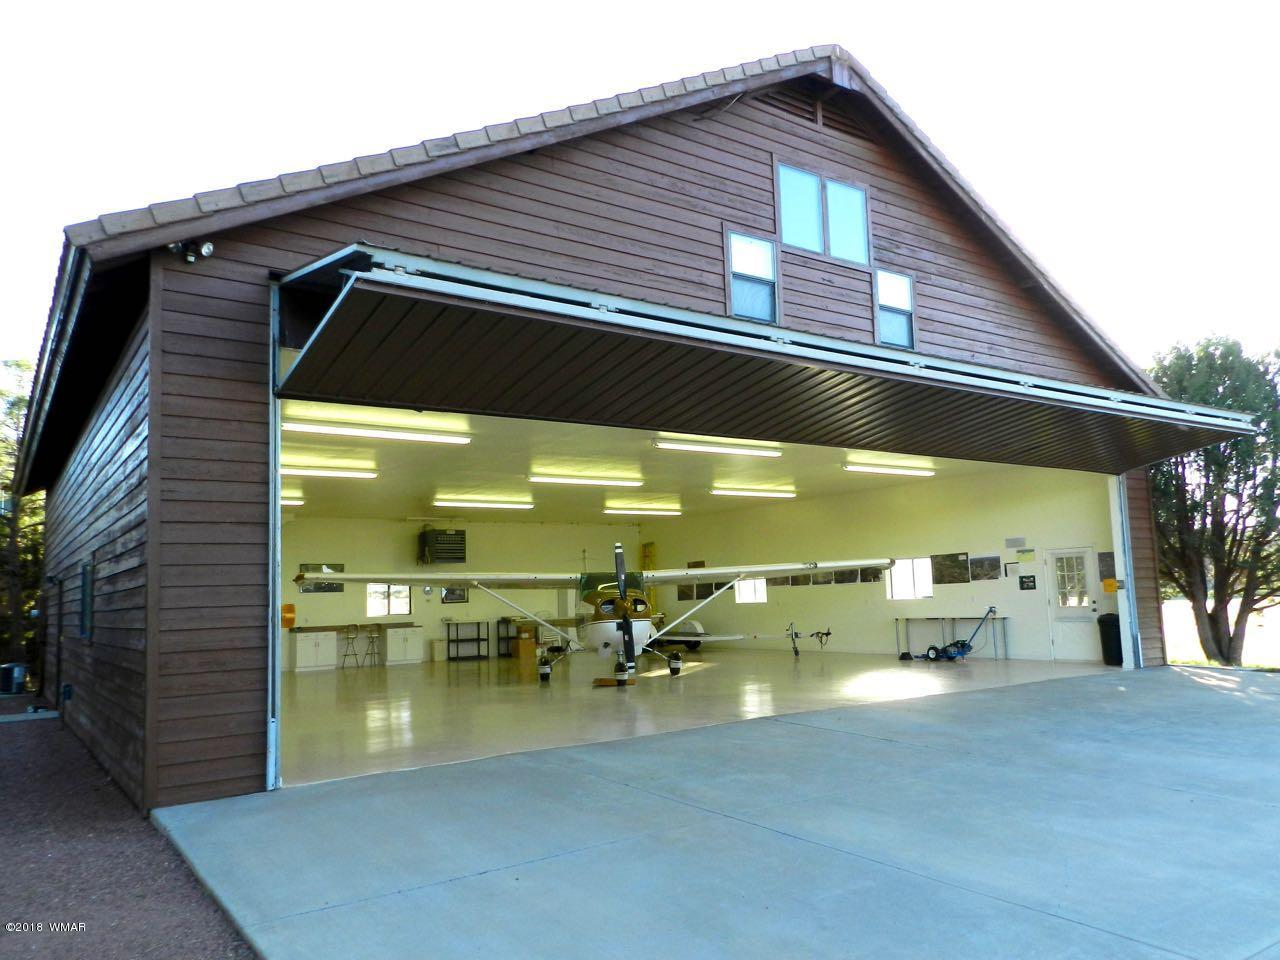 Watch all of the action from your Mid-Field 50' x 50' Hangar with a furnished 700 sq-ft apartment above located on a 0.95-acre home lot at the prestigious Mogollon Airpark (AZ82).  The apartment features an eat-in kitchen with granite counter tops, gas oven/range, dishwasher, microwave and refrigerator. The adjoining family room is furnished in a casual and comfortable style.  Skylights and solar tubes provide daylight lighting throughout.  The bathroom features a beautifully tiled shower and tiled vanity with double sinks.  A spacious 14' x 14' furnished master bedroom completes the interior space.  Stacked washer/dryer hookups.  A tankless gas water heater and re-circulating pump provide instantaneous unlimited hot water. Winterization bibs allow for complete water draining.